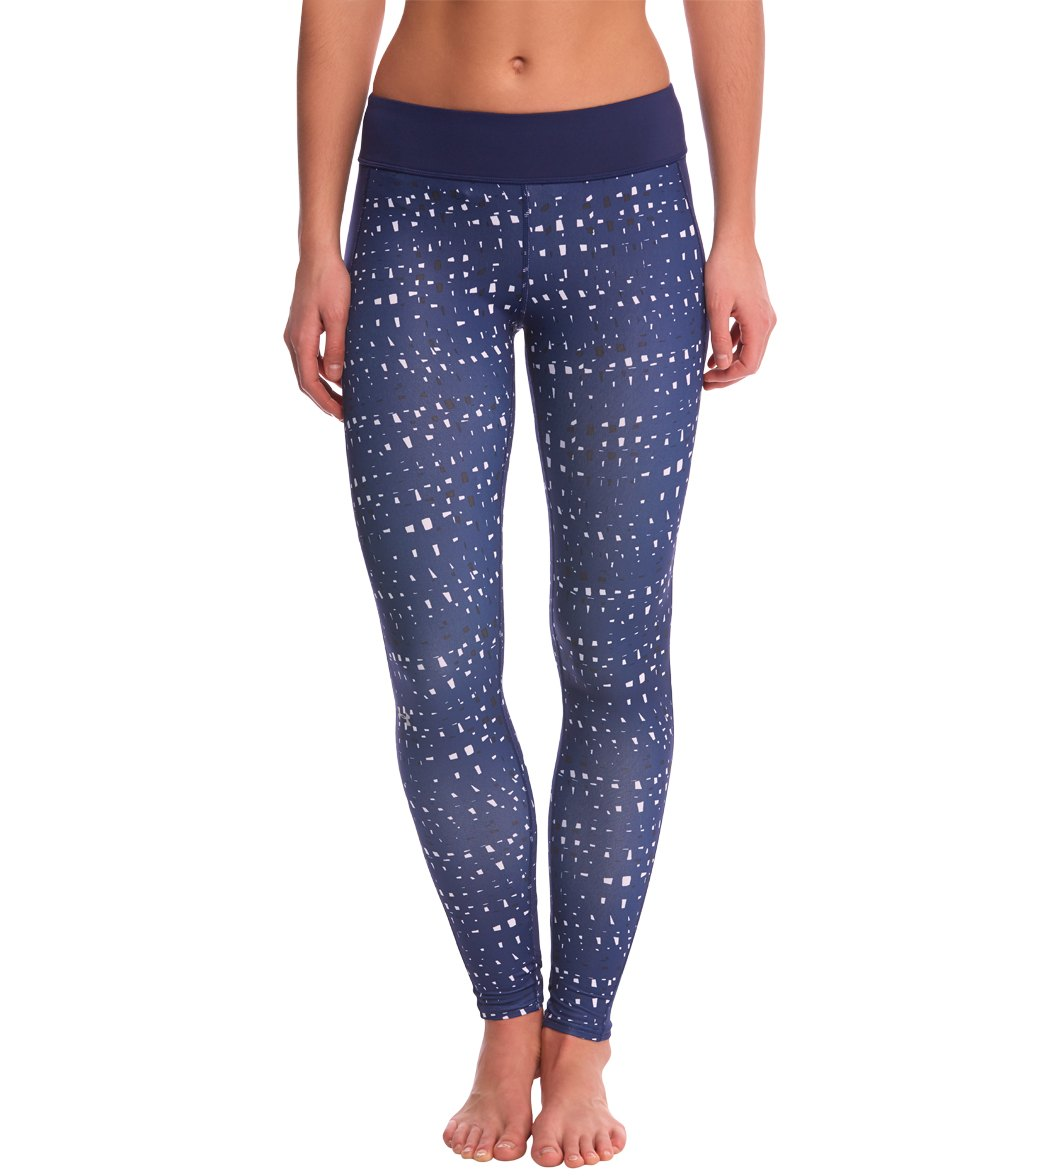 a11f940d4dbc8b Under Armour Women's Armour ColdGear Leggings (Printed) at SwimOutlet.com -  Free Shipping